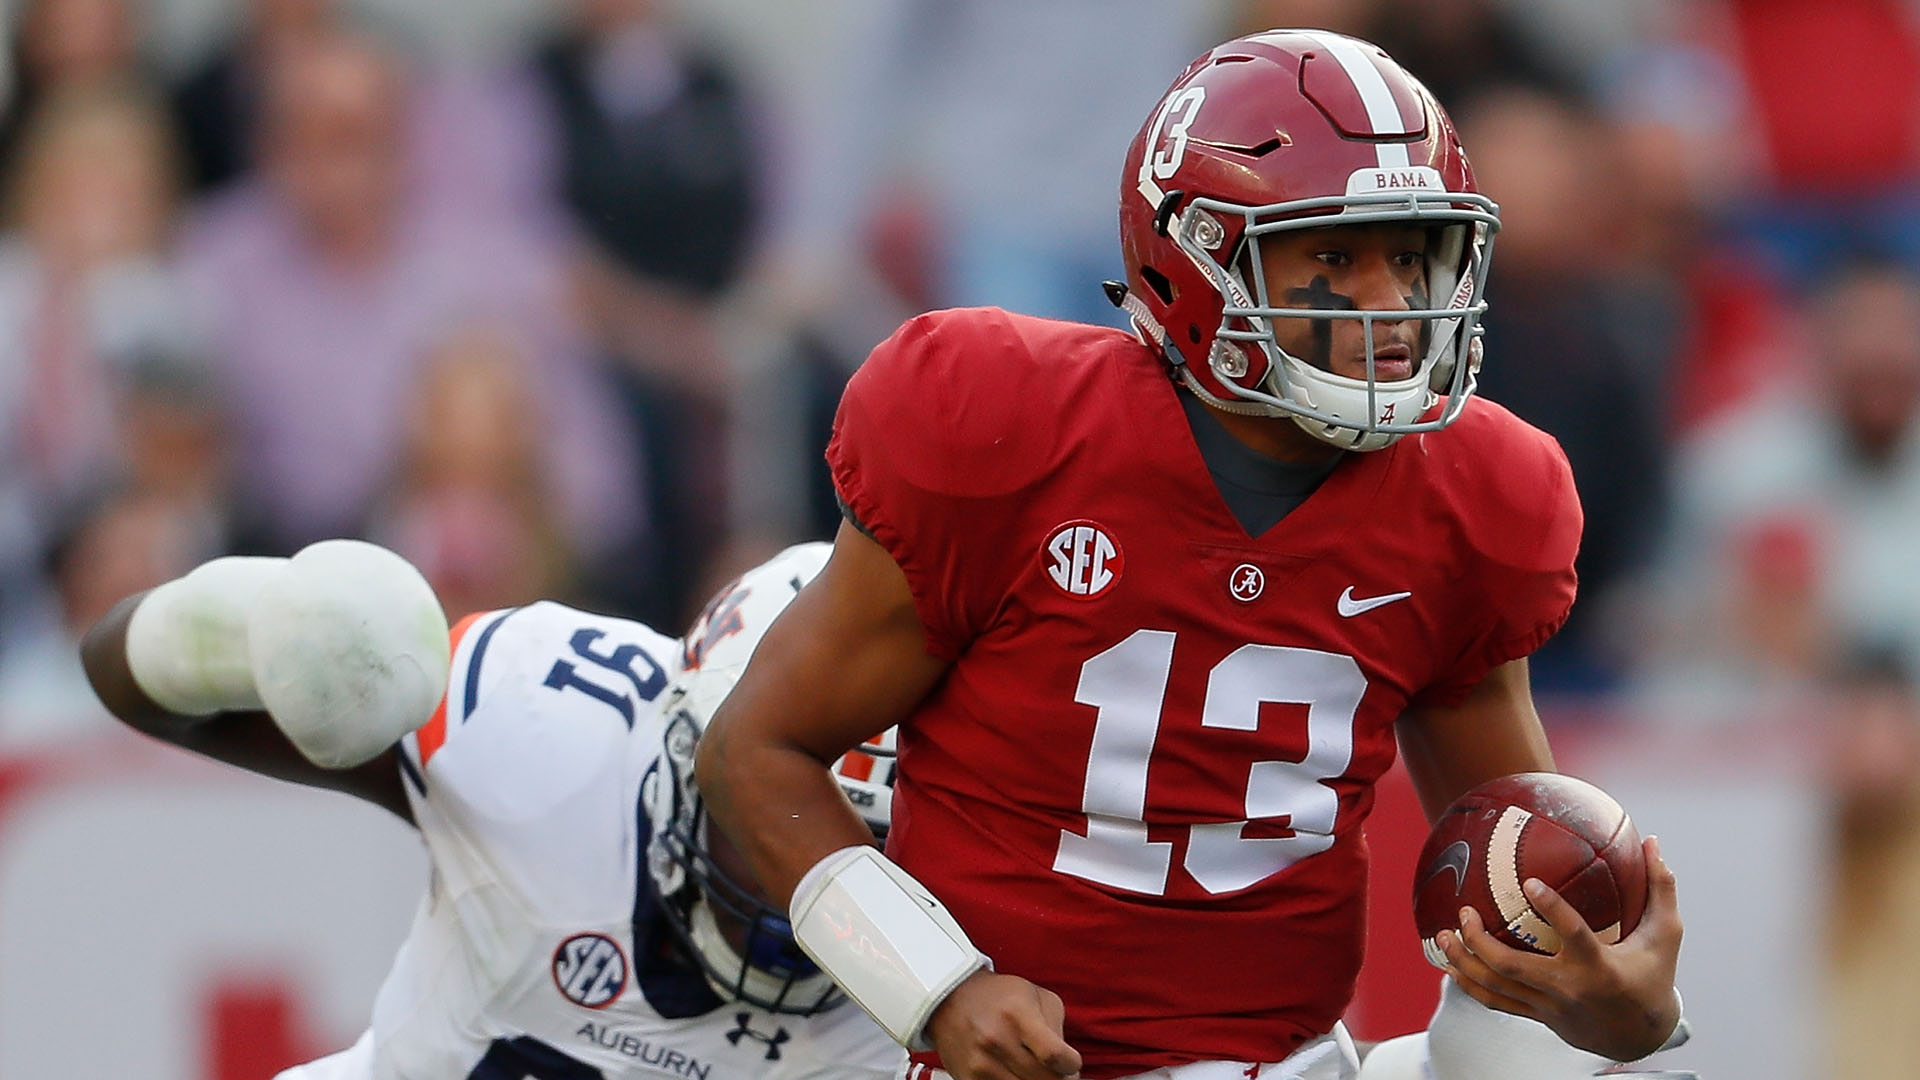 College Football Awards 2018: Alabama QB Tua Tagovailoa wins Maxwell Award